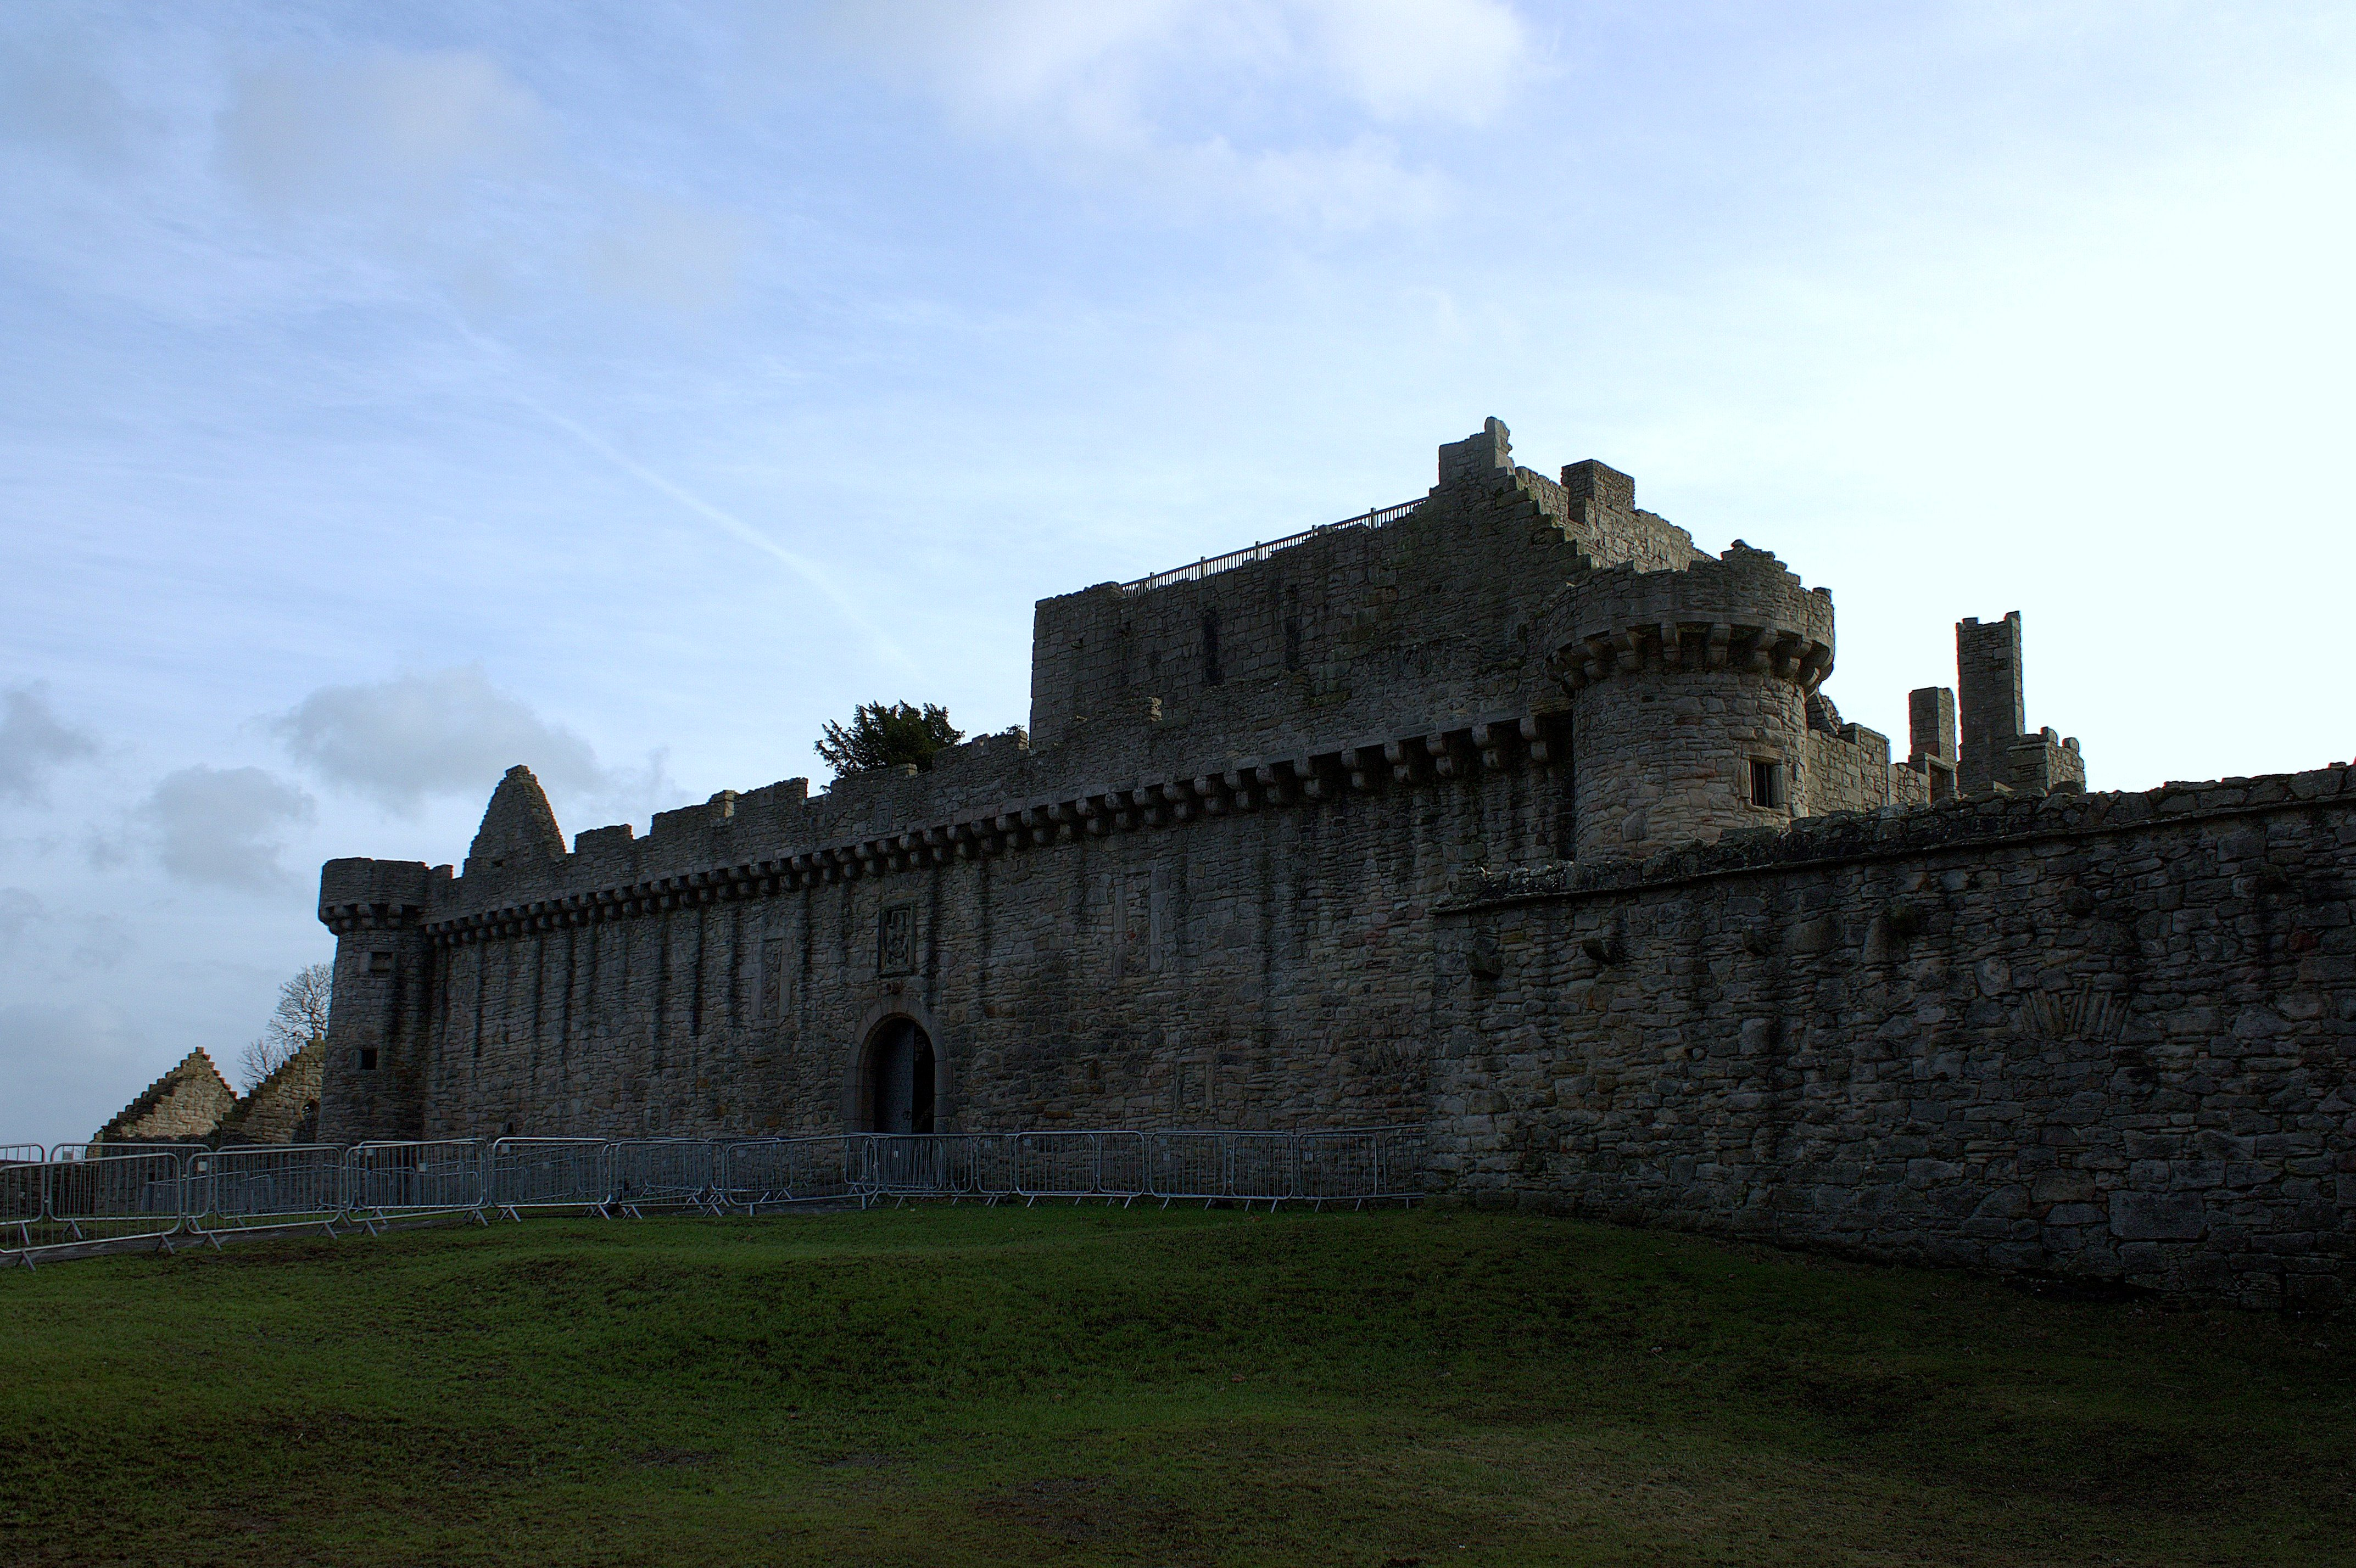 51. Craigmillar Castle, Edinburgh, Scotland